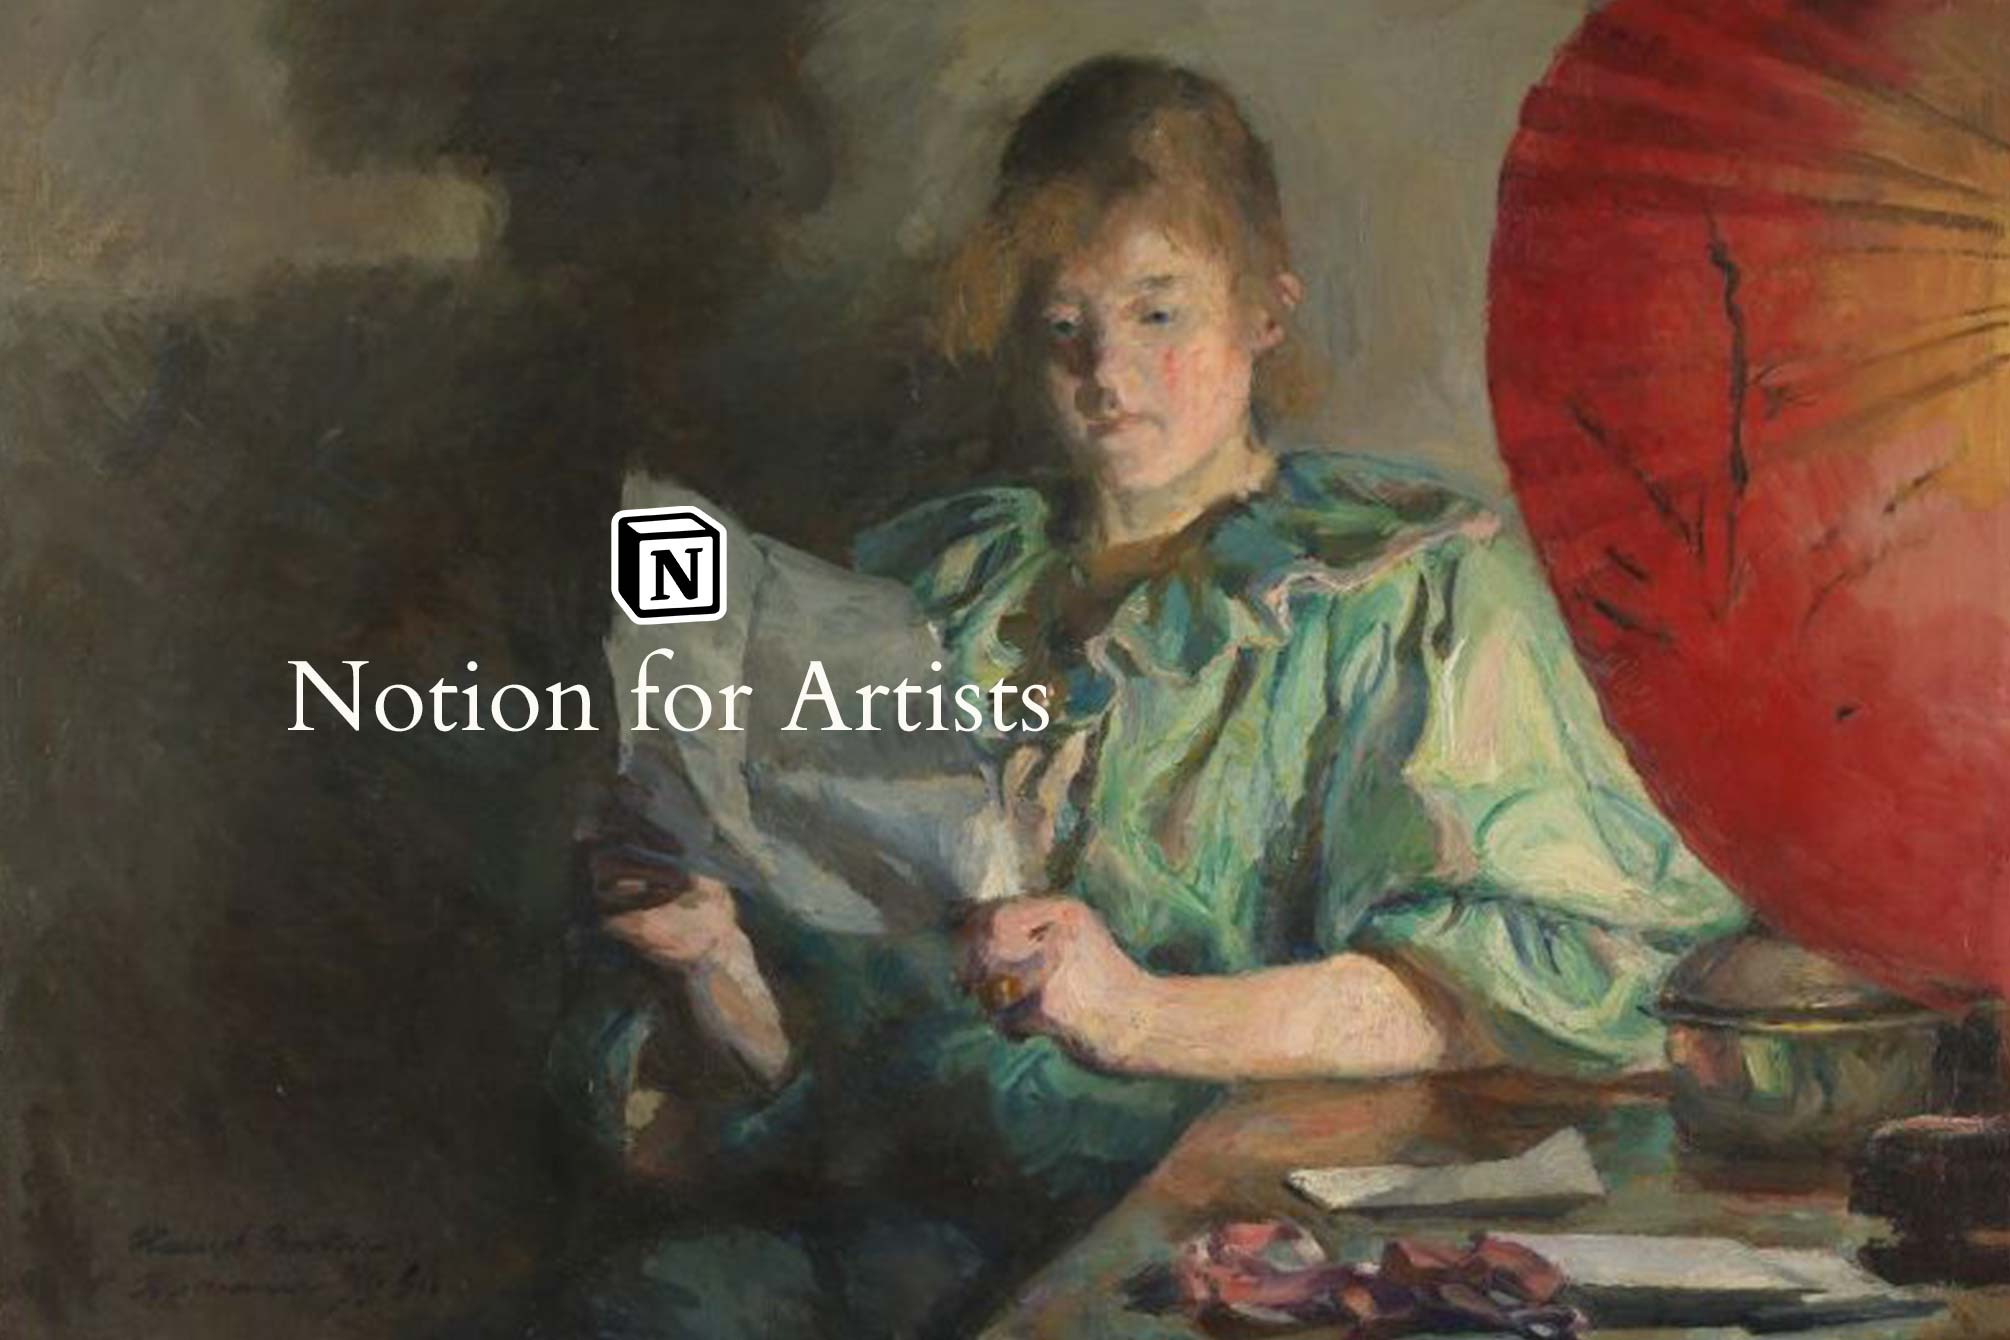 Notion for Artists